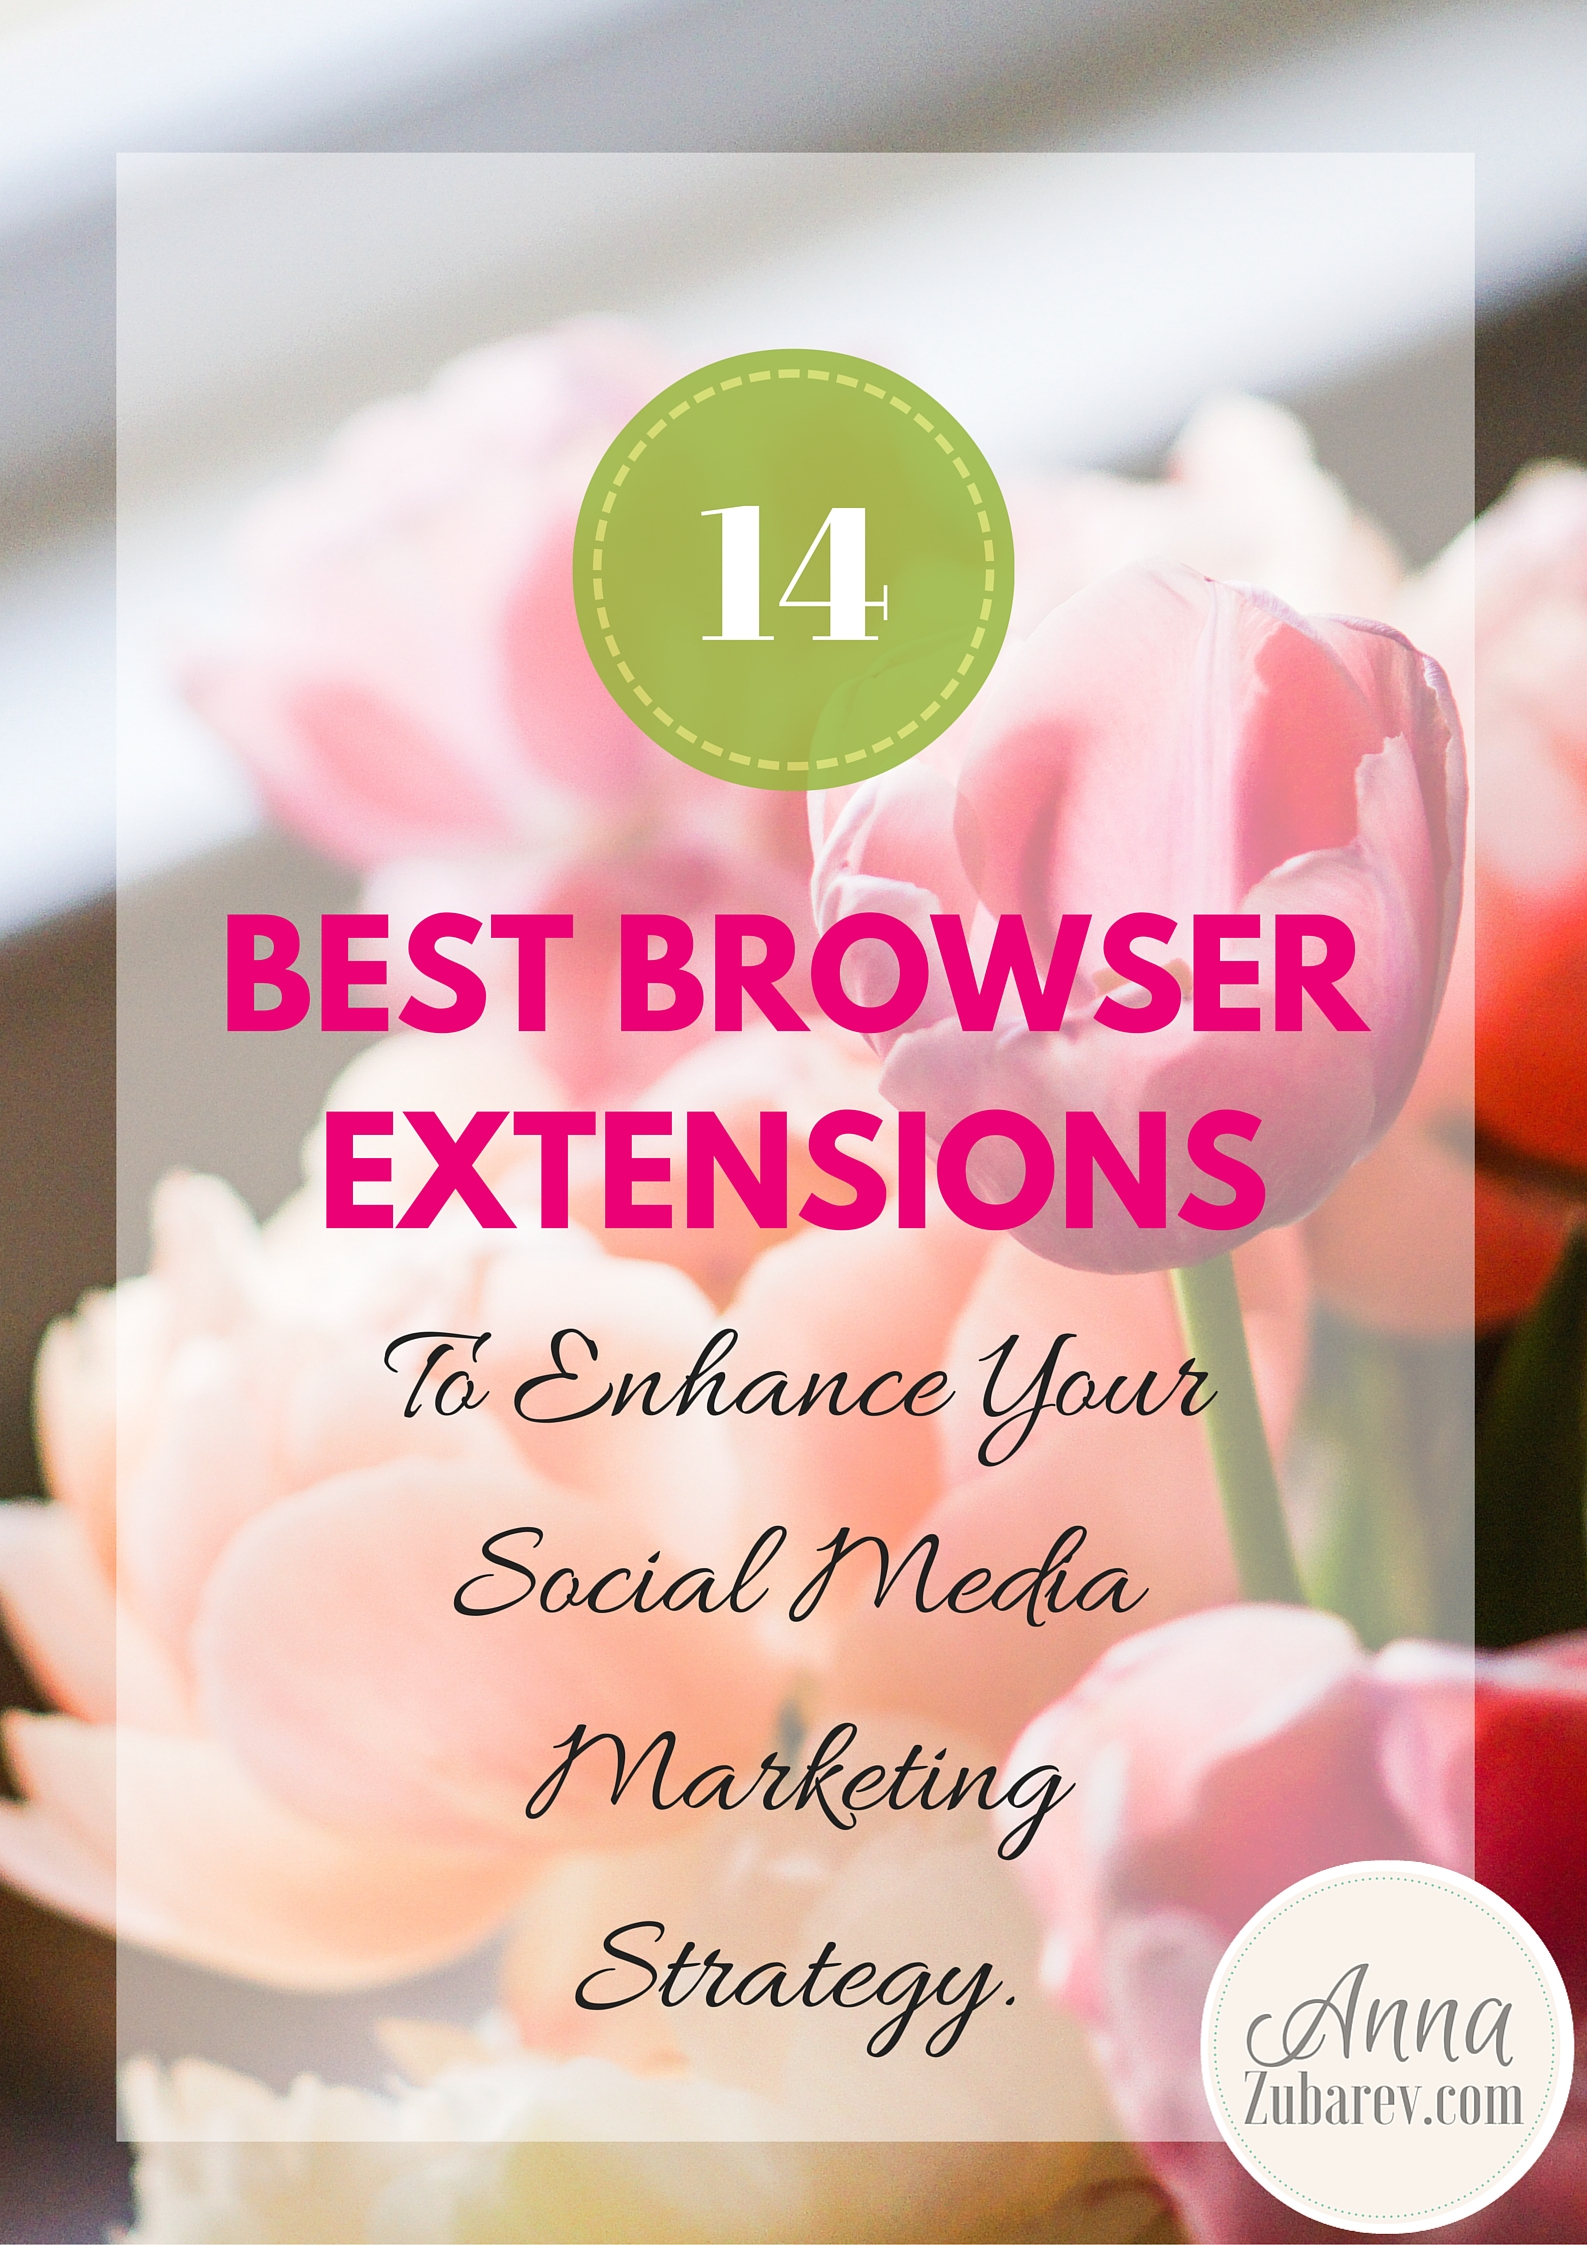 14 Best Browser Extensions To Enhance Your Social Media Marketing Strategy. via @annazubarev